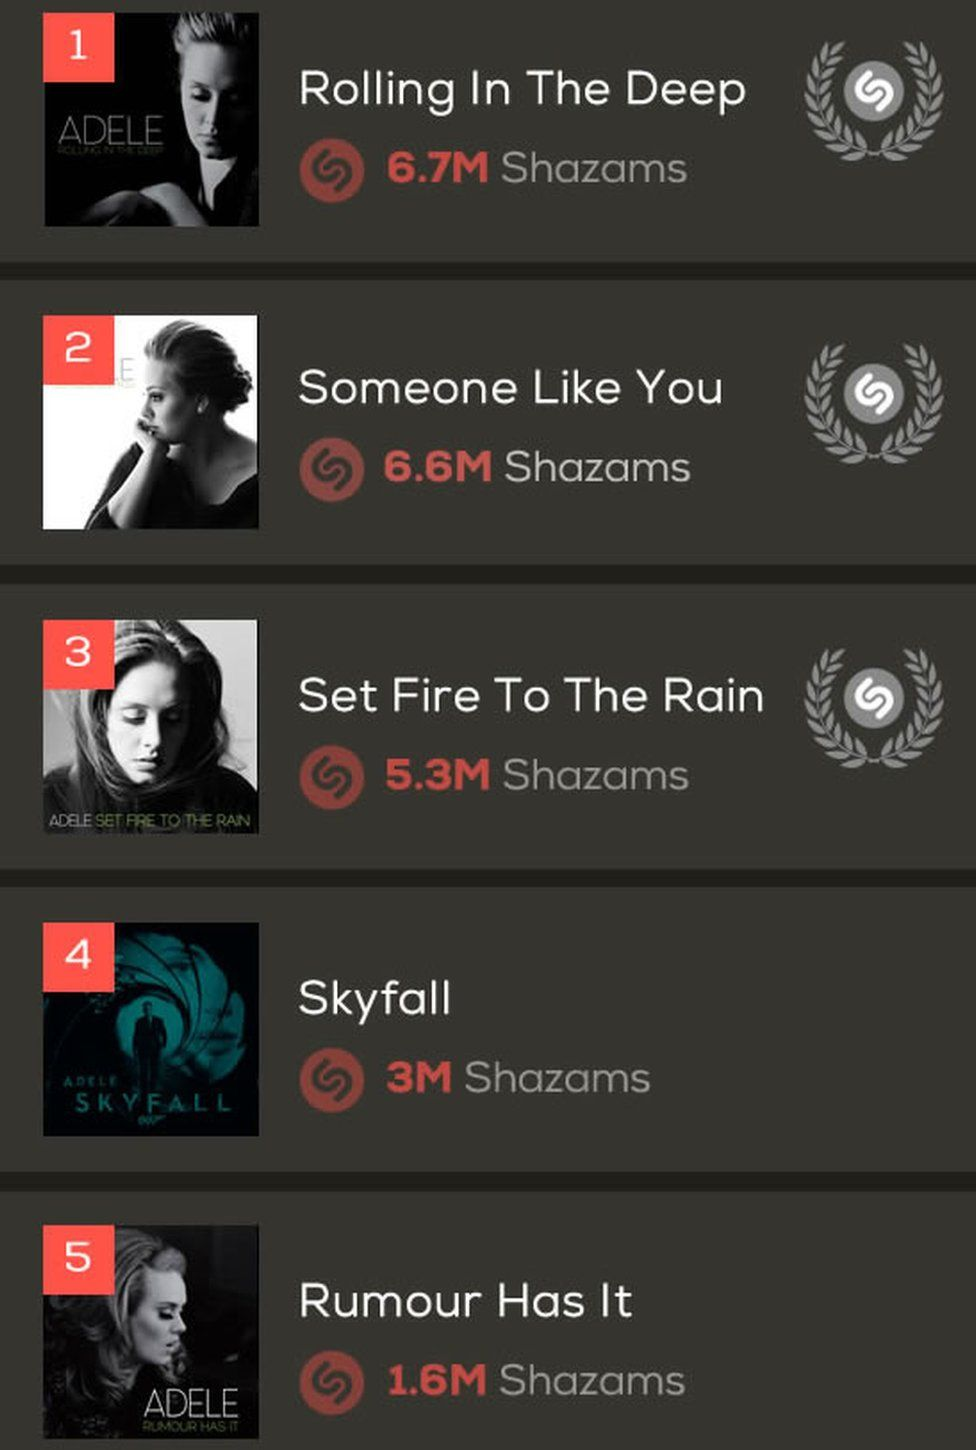 Rolling in the Deep is Adele's most Shazamed song of all time